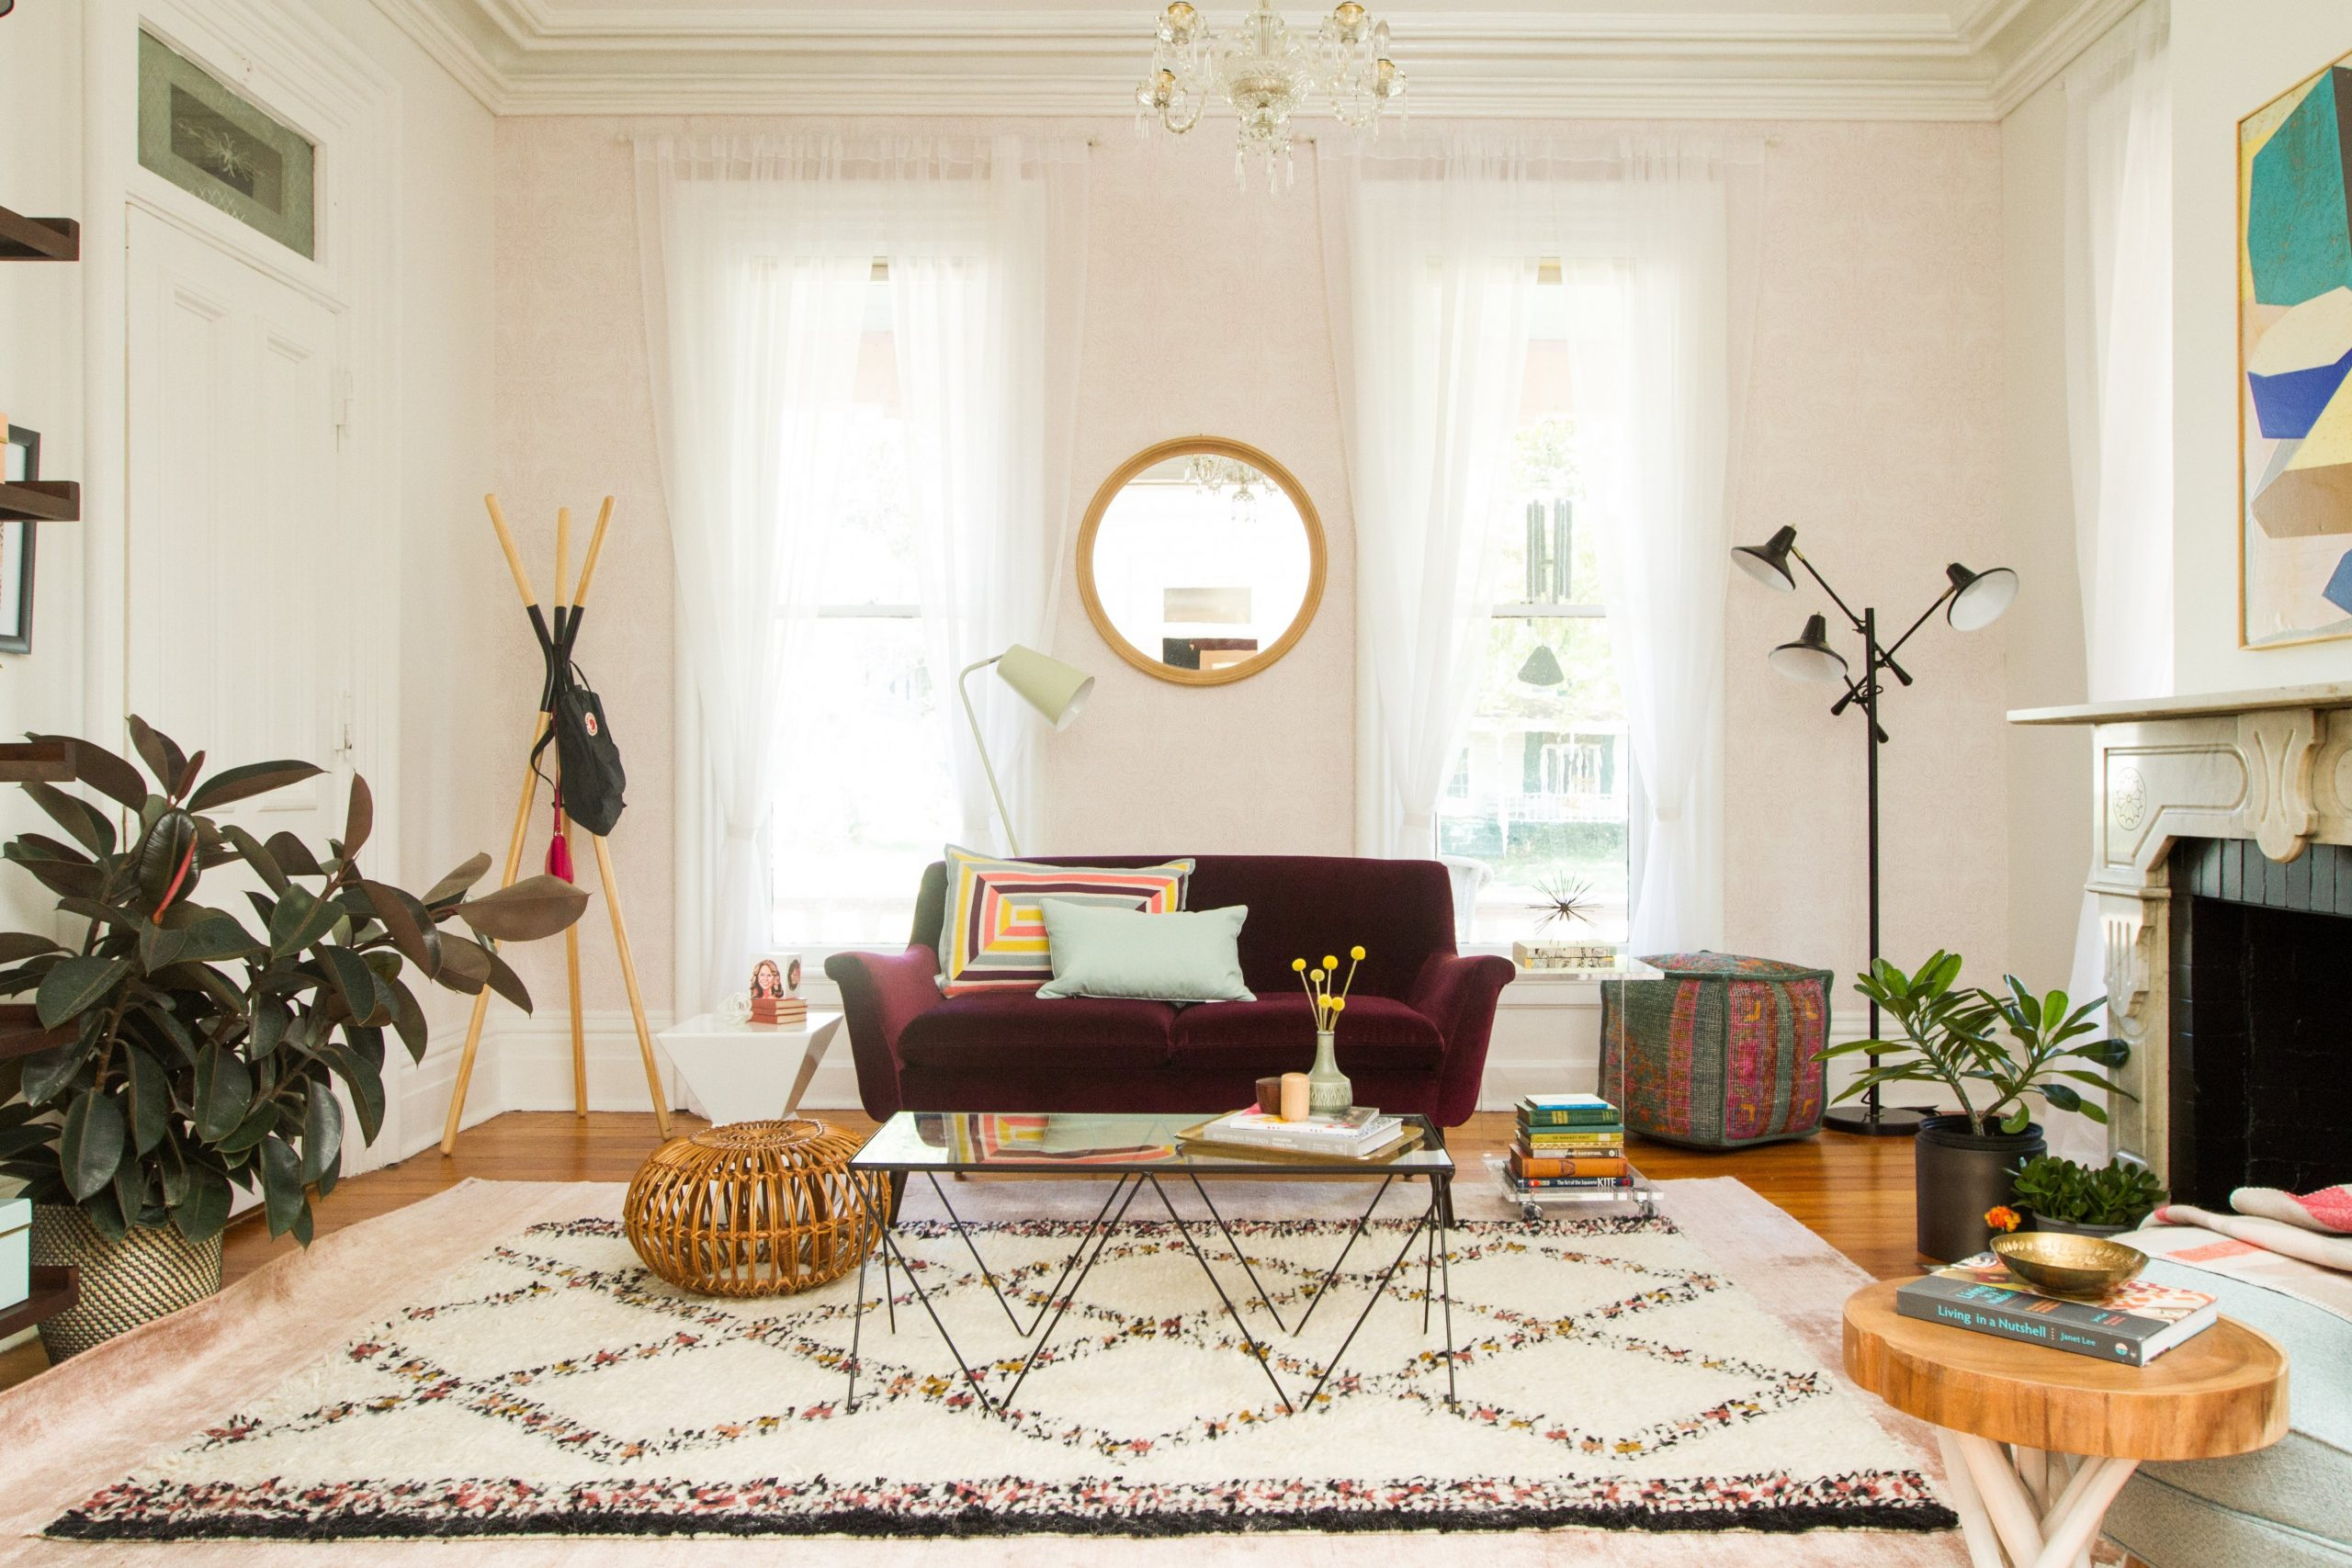 10 Small Living Room Decorating & Design Ideas - How to Decorate a  - Apartment Design Living Room